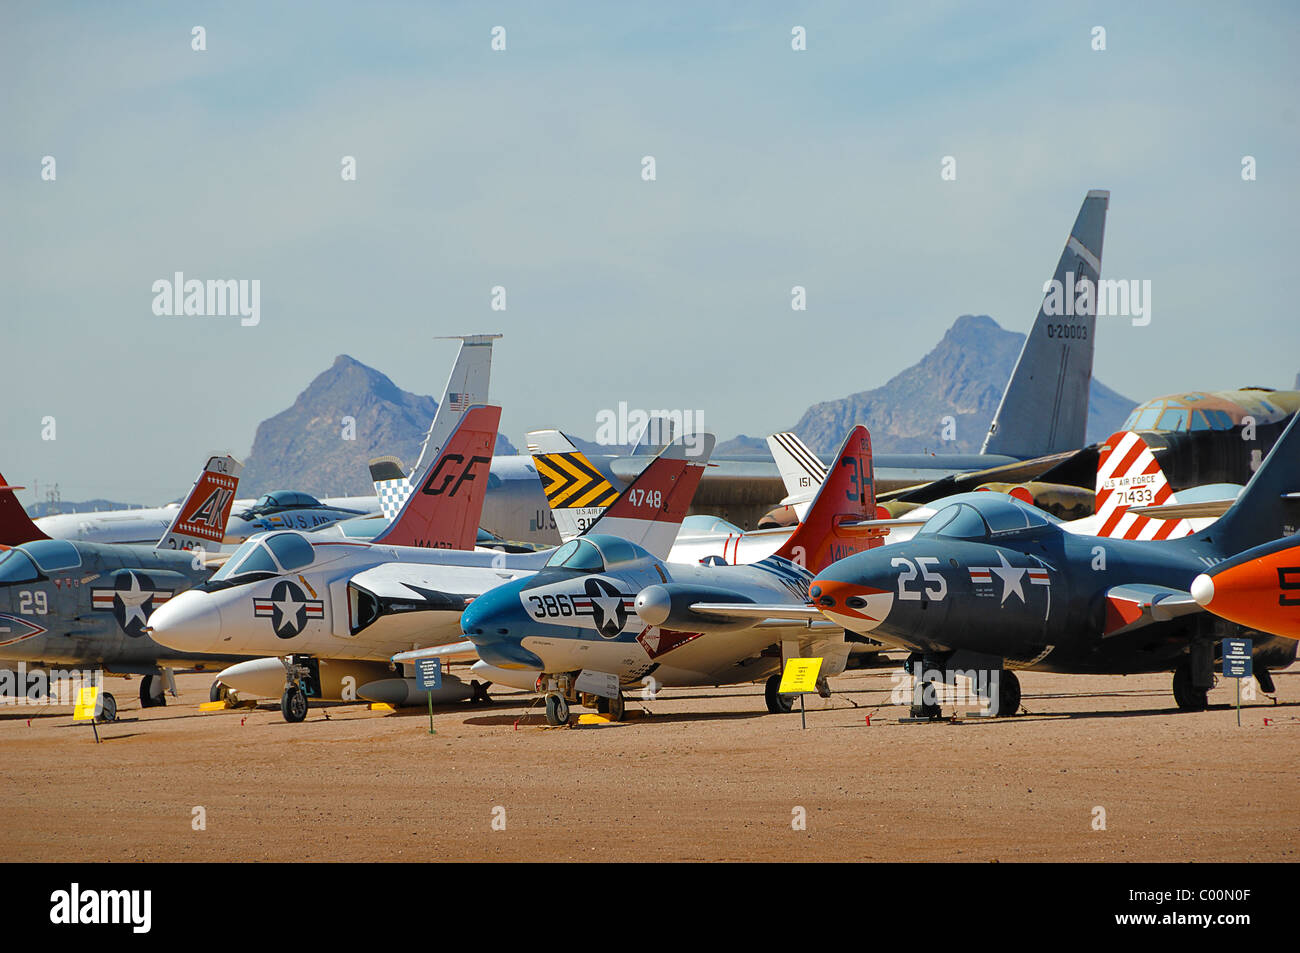 Miscellaneous selection of fighter aircraft at Pima Air and Space Museum, near Tucson, Arizona, USA - Stock Image